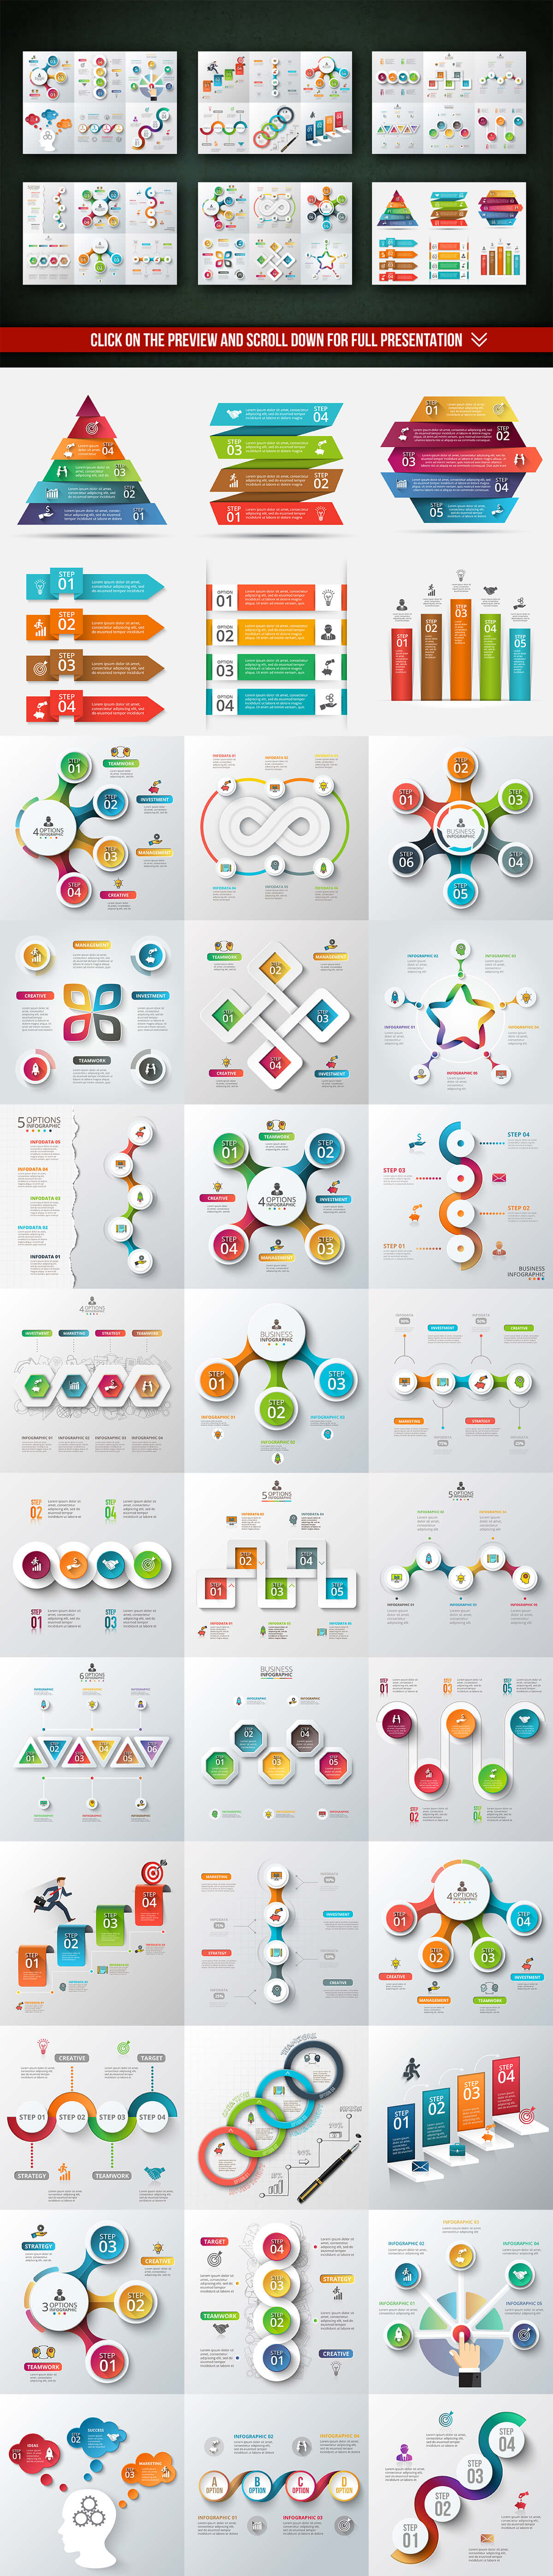 2-18 40+ Best Infographic Templates (Word, PowerPoint & Illustrator) design tips